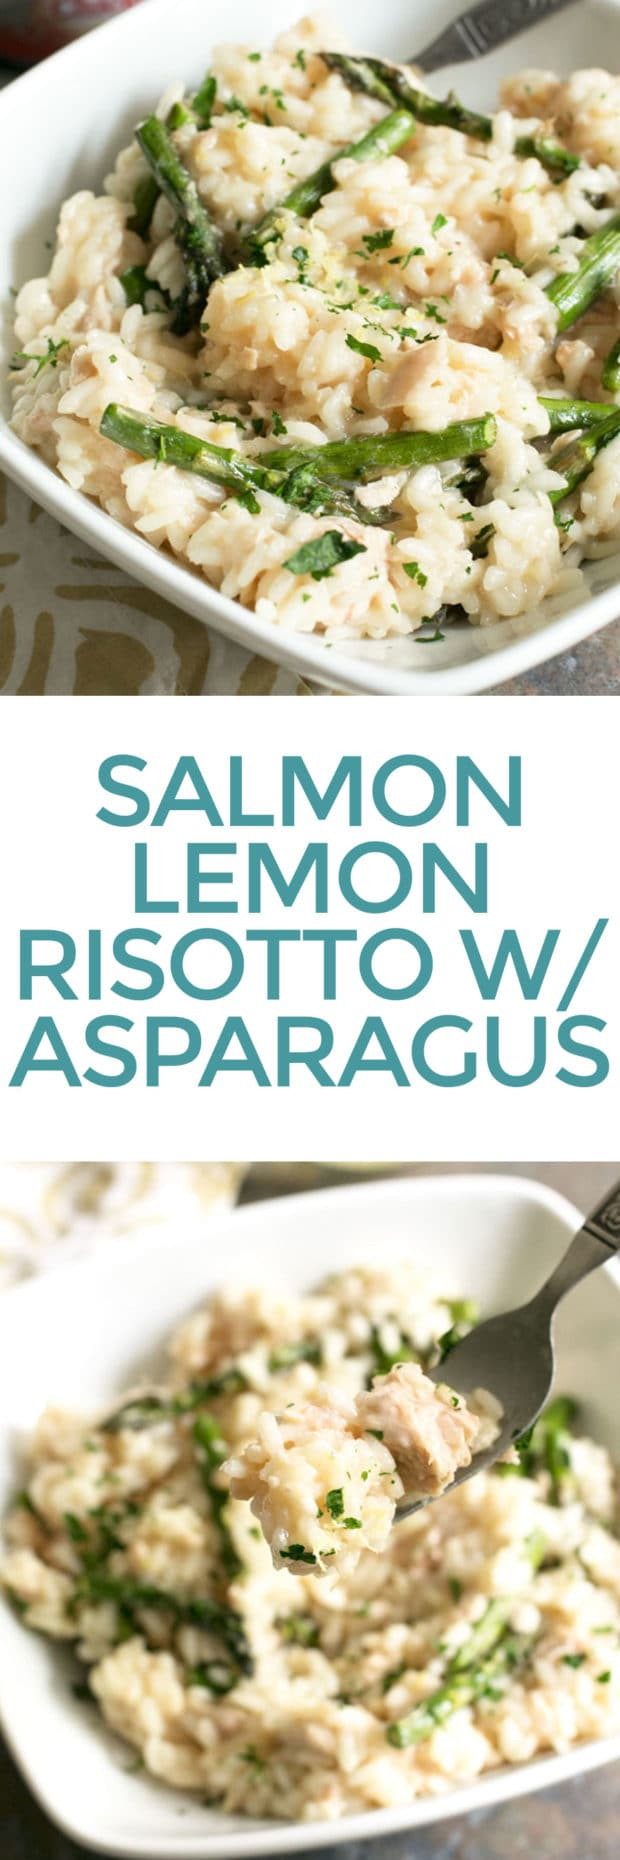 Salmon Lemon Risotto with Asparagus | cakenknife.com